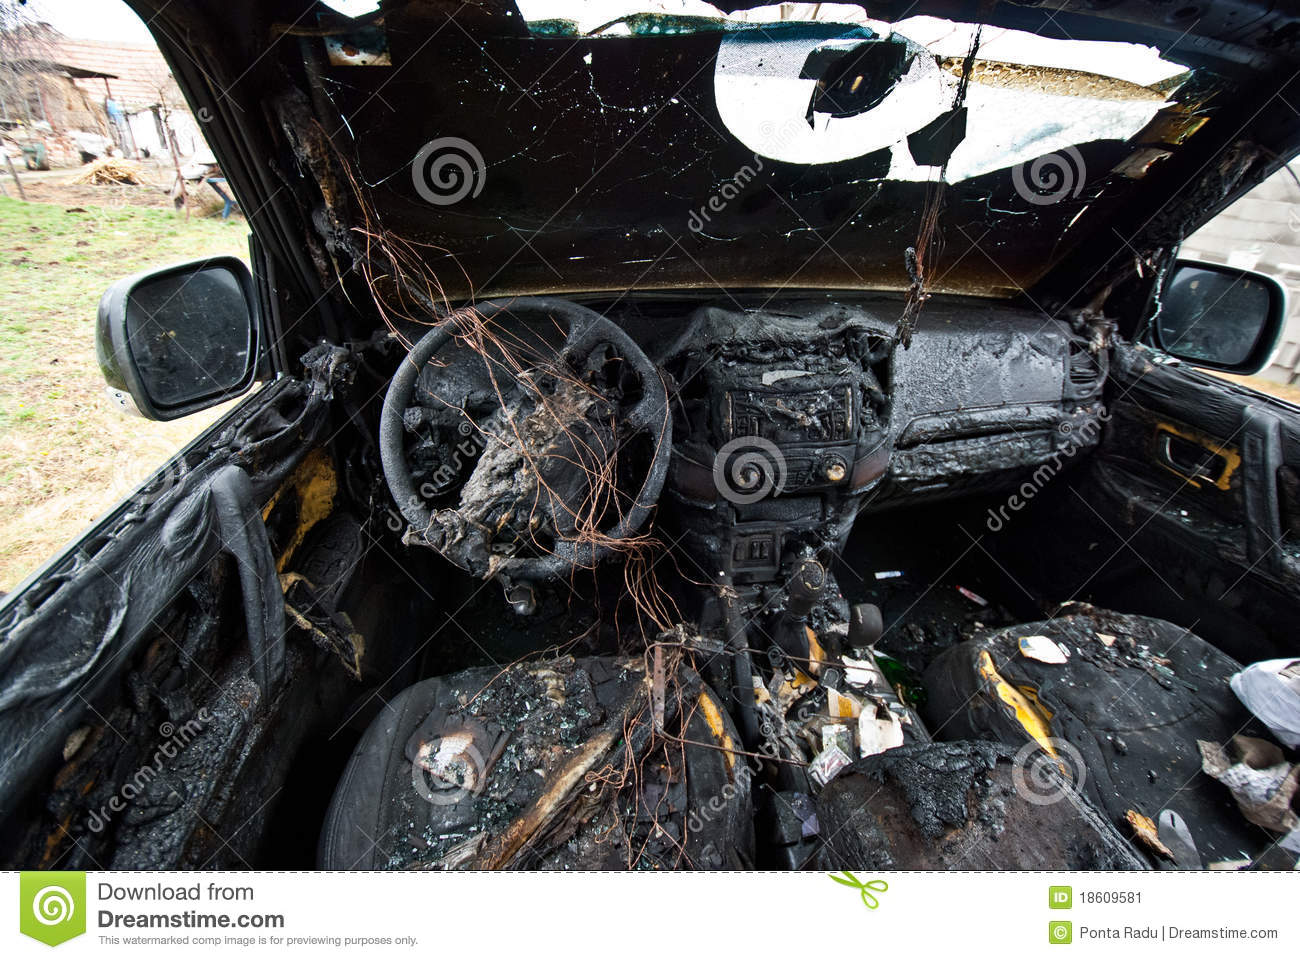 Sell Old Car >> Burned car stock image. Image of driving, caution, crash - 18609581